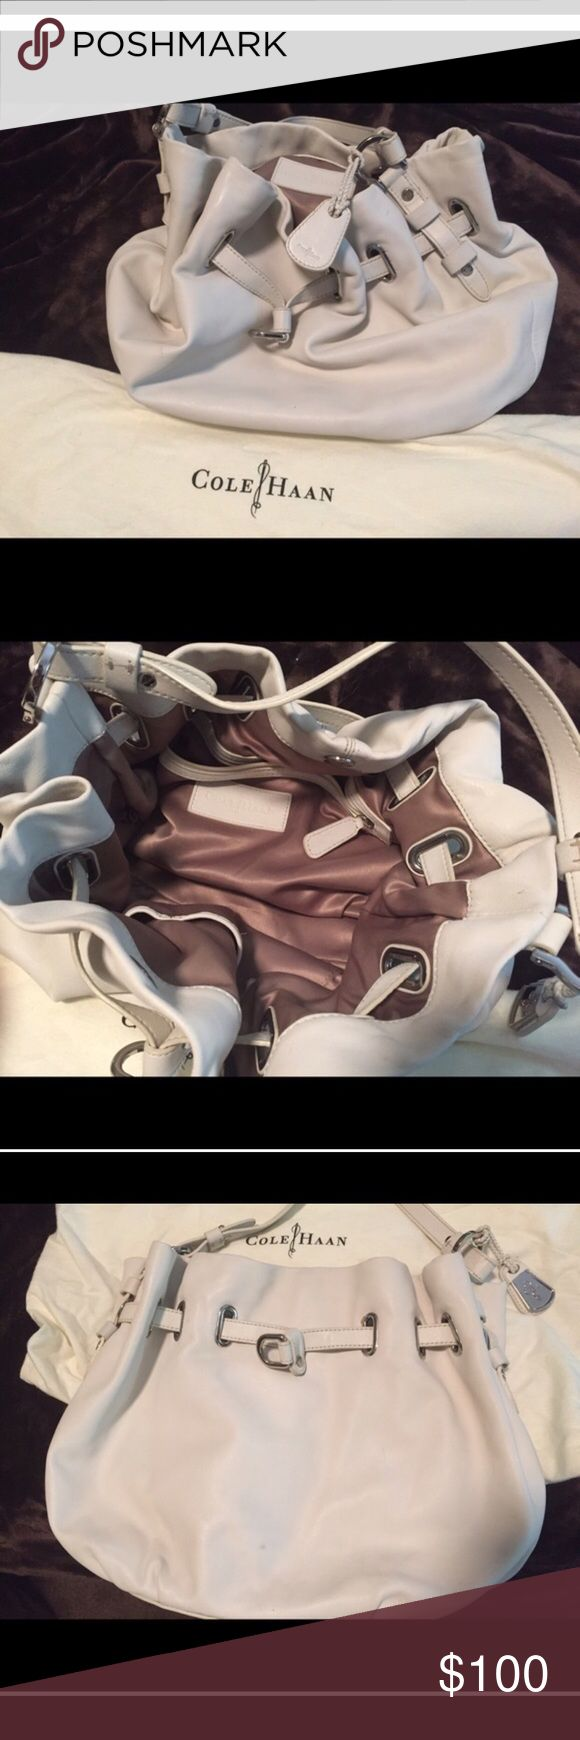 Cole Haan bag. Mint condition Cole Haan mint condition bag. Carried once. Comes with original Cole Haan storing Bag Cole Haan Bags Shoulder Bags